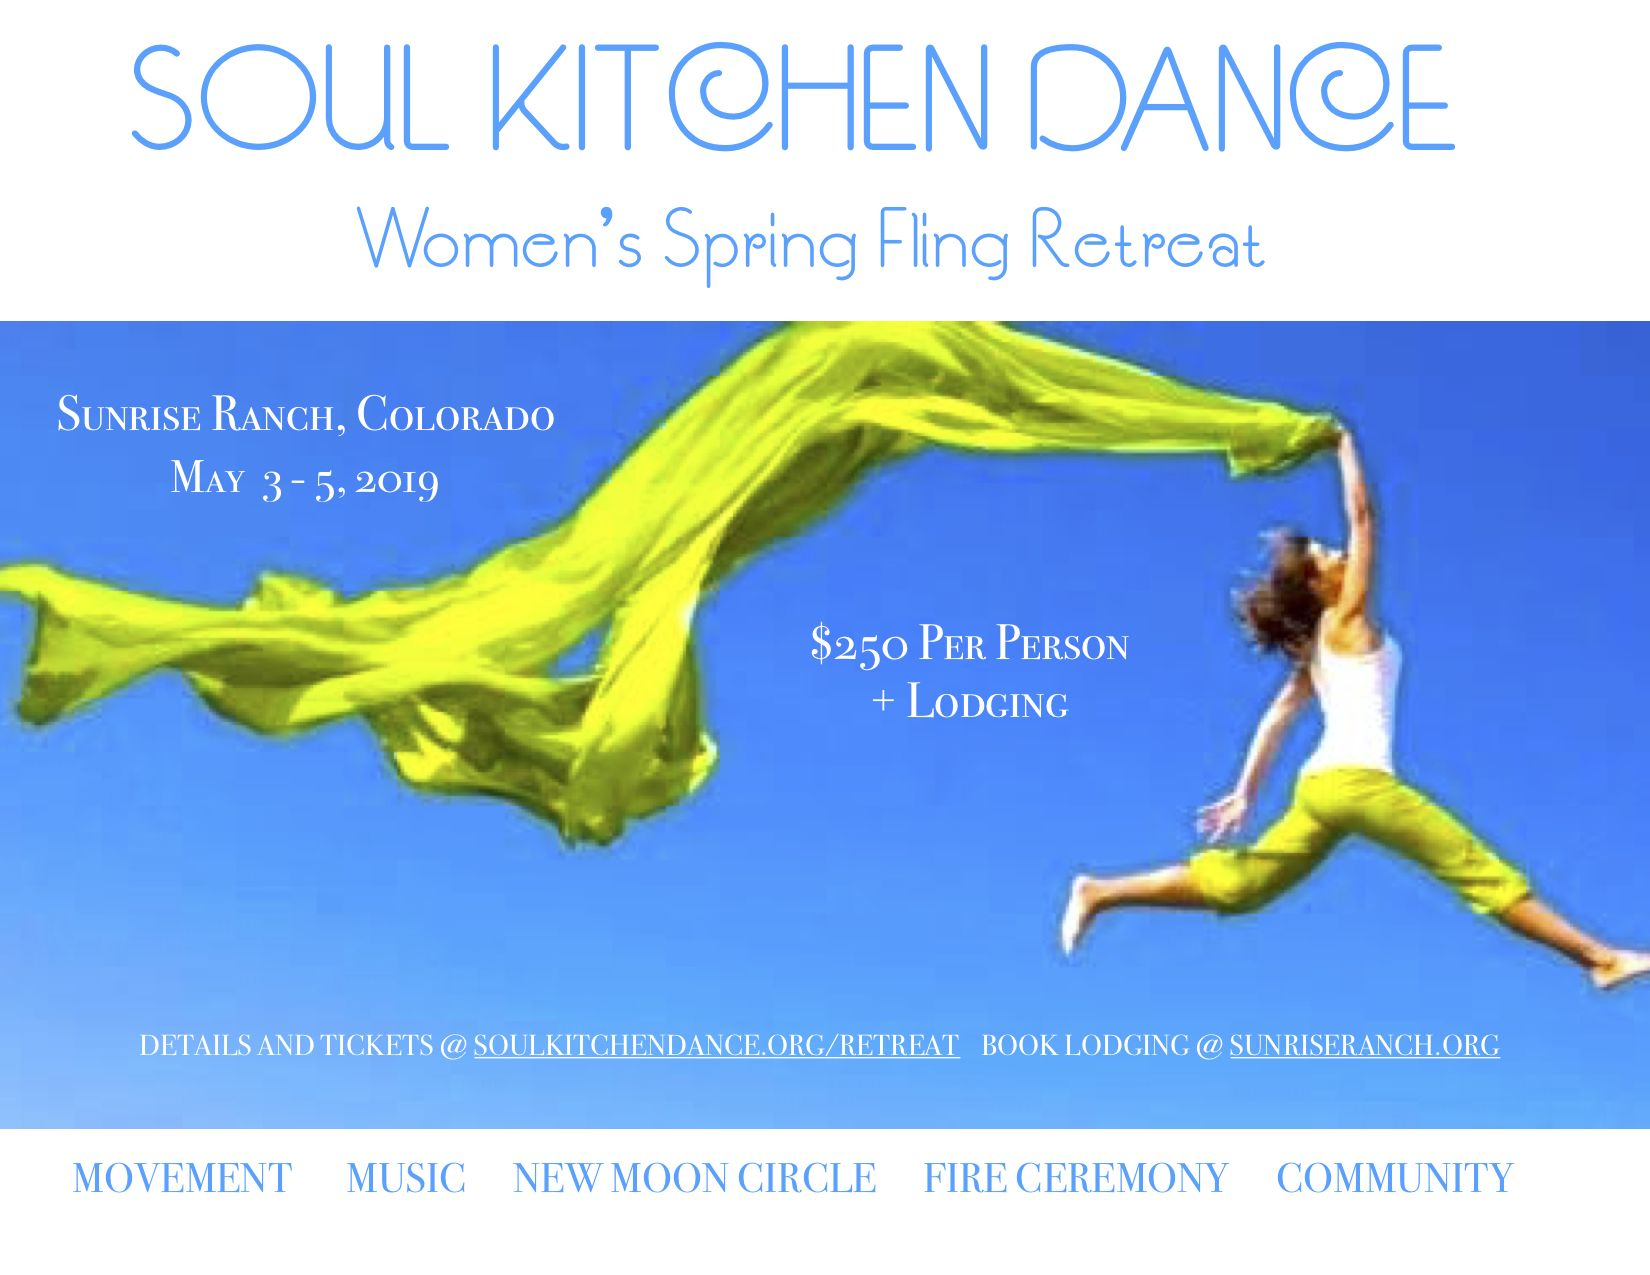 Womens spring fling retreat • may 3 5 2019 • sunrise ranch movement •